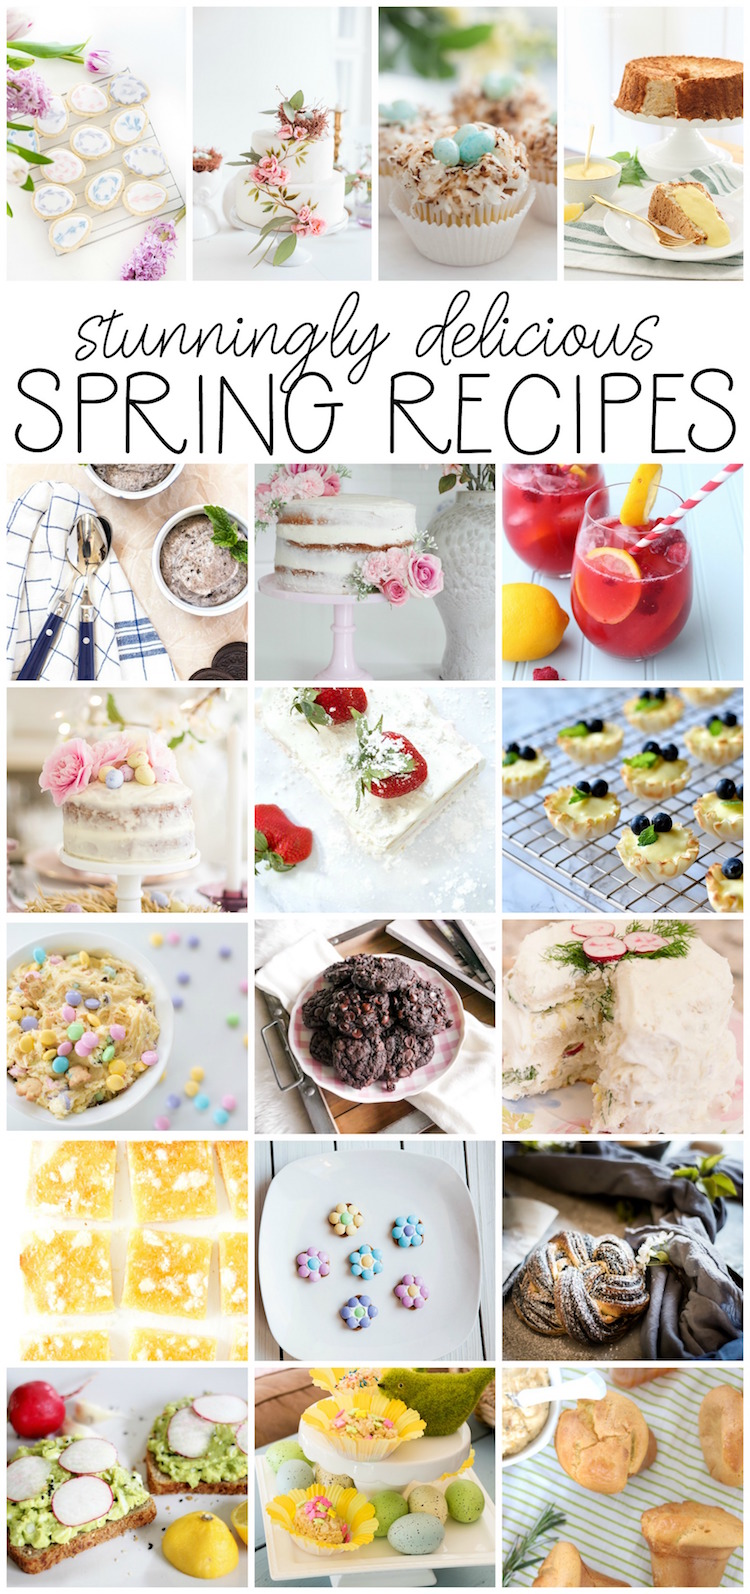 Stunningly delicious spring recipes graphic.